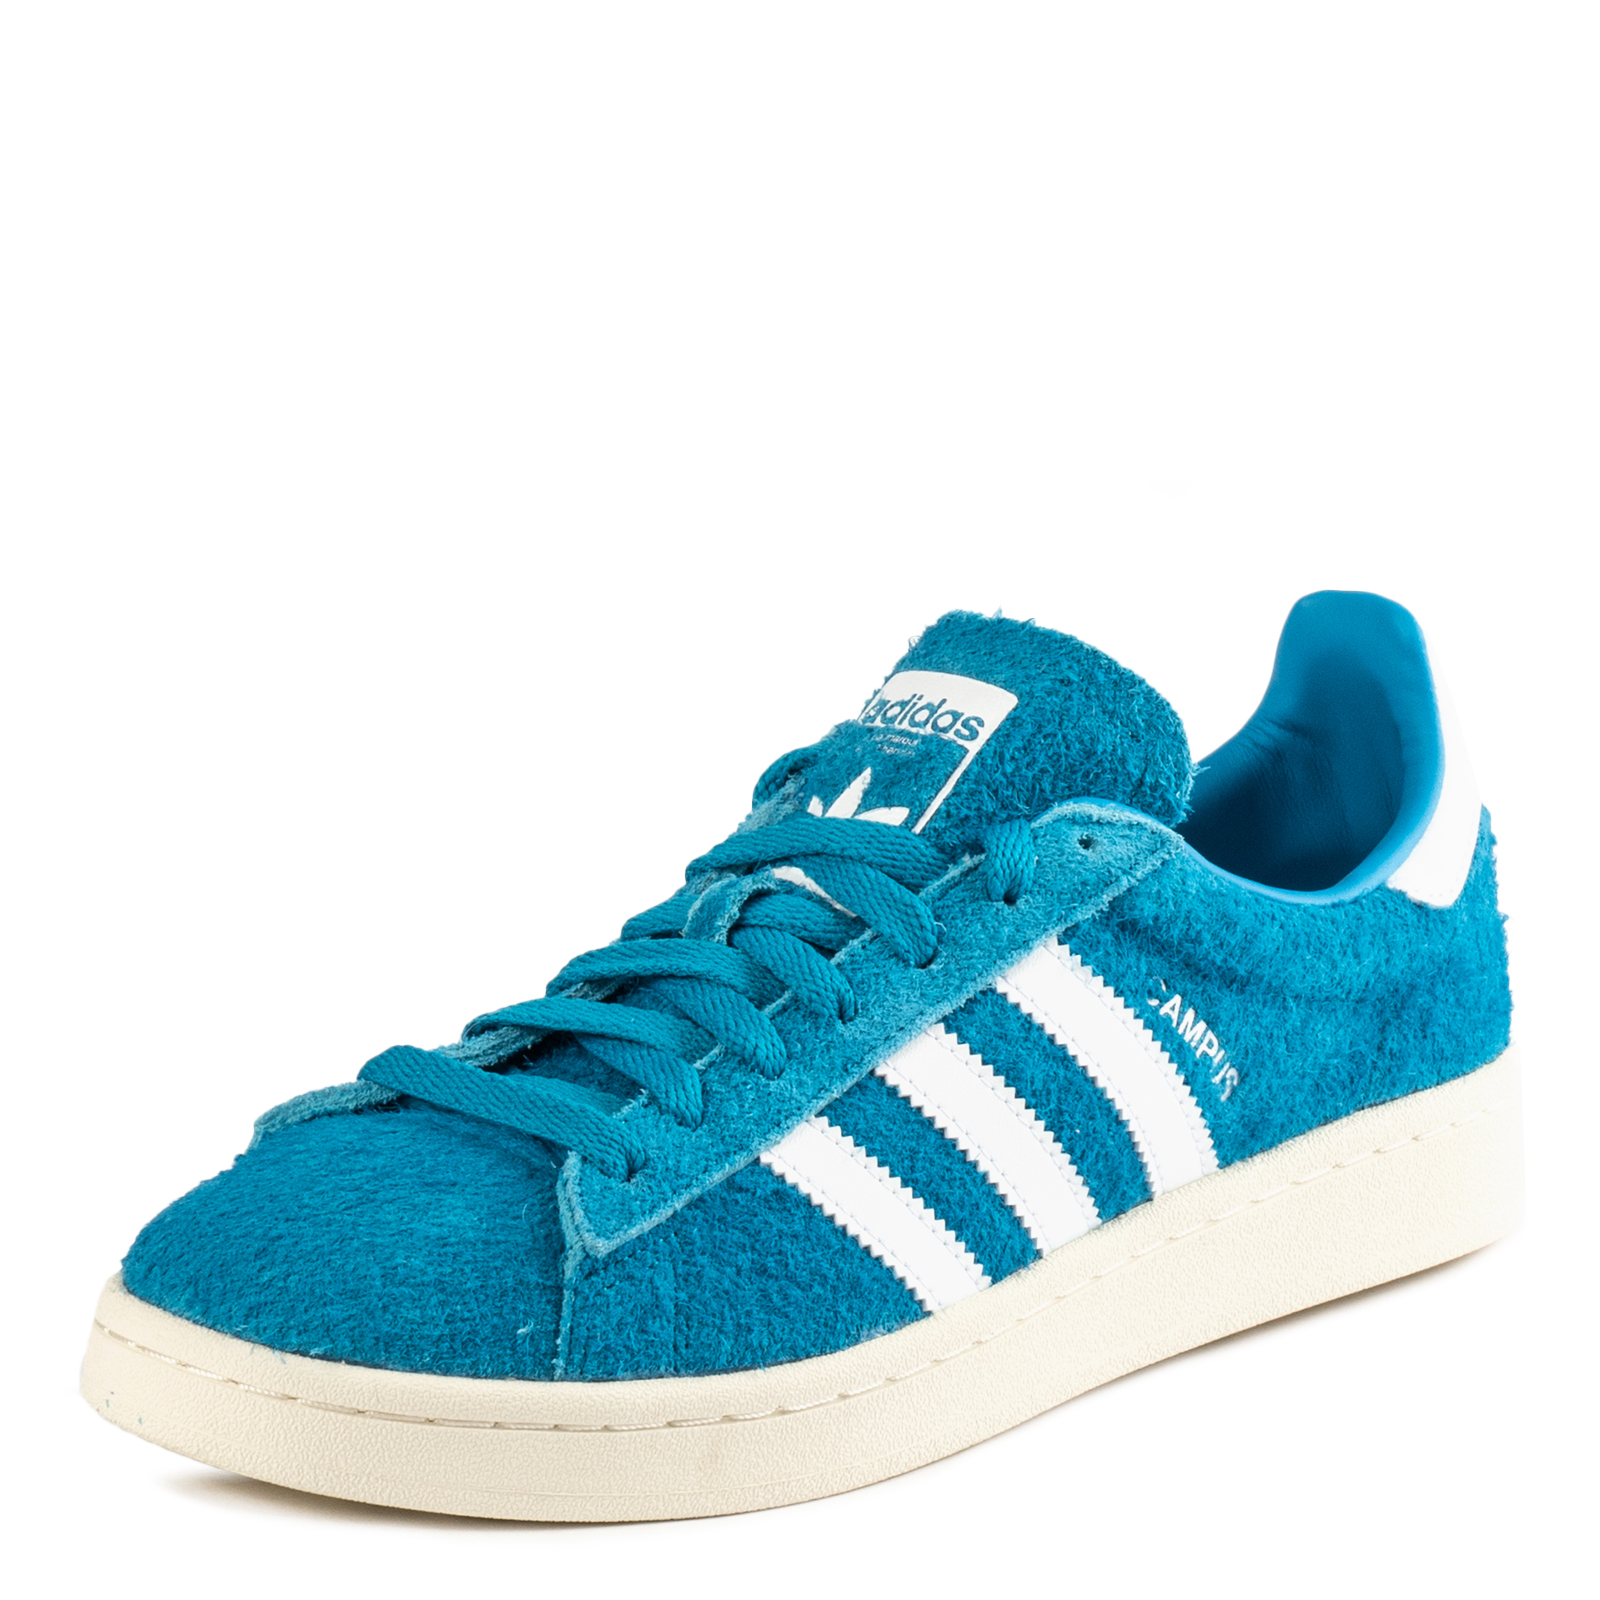 Sneakers Adidas BZ0070 sports and entertainment for men